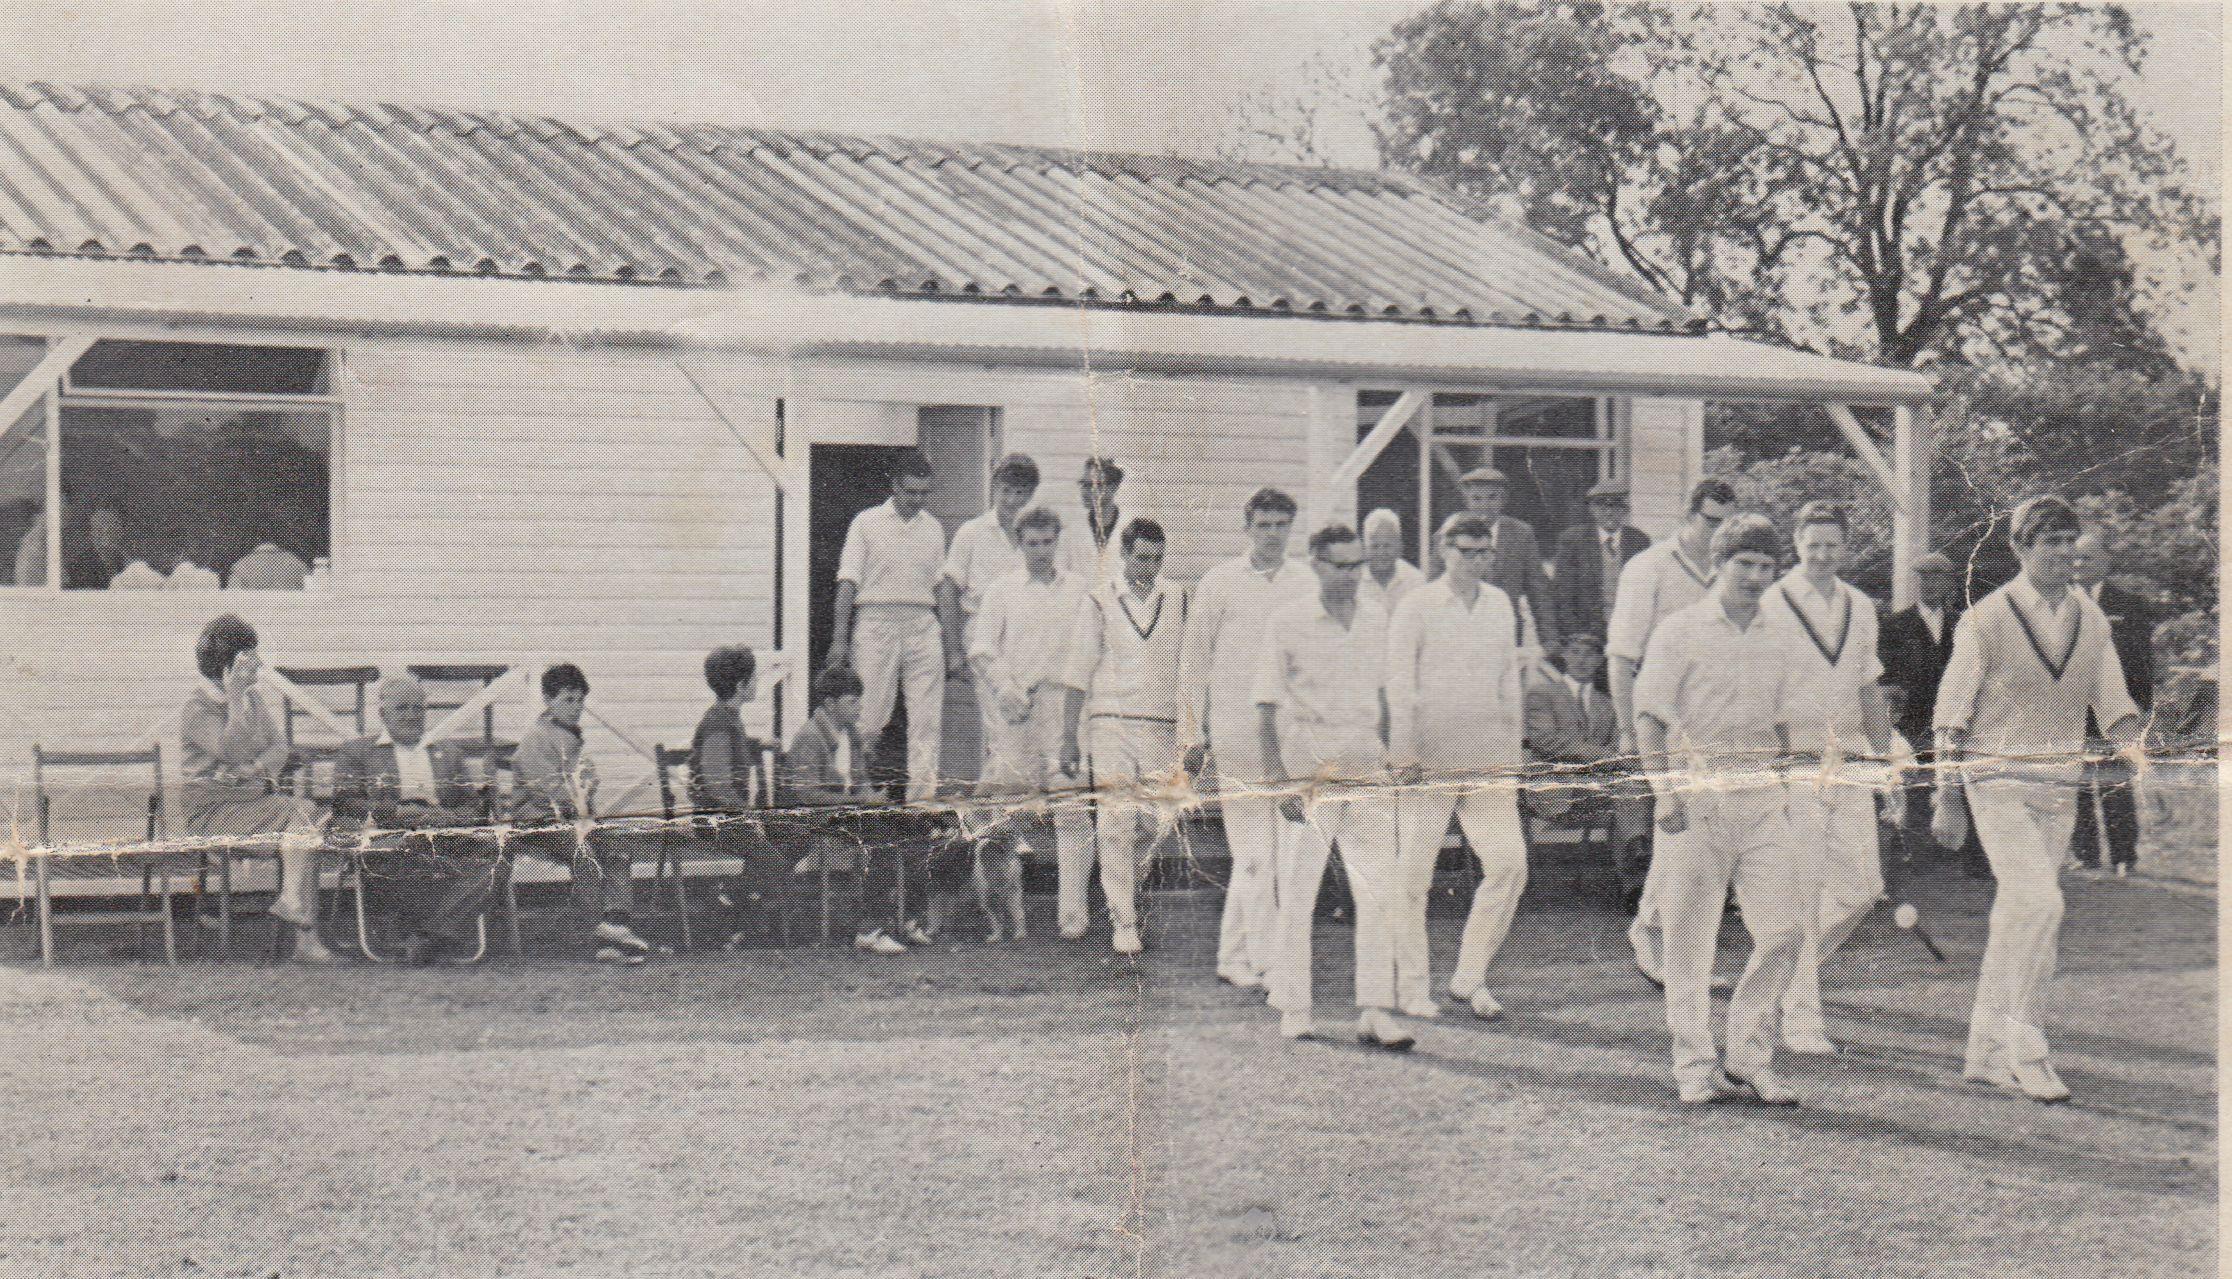 cricket_pavilion_team_walking_out_0001.jpg